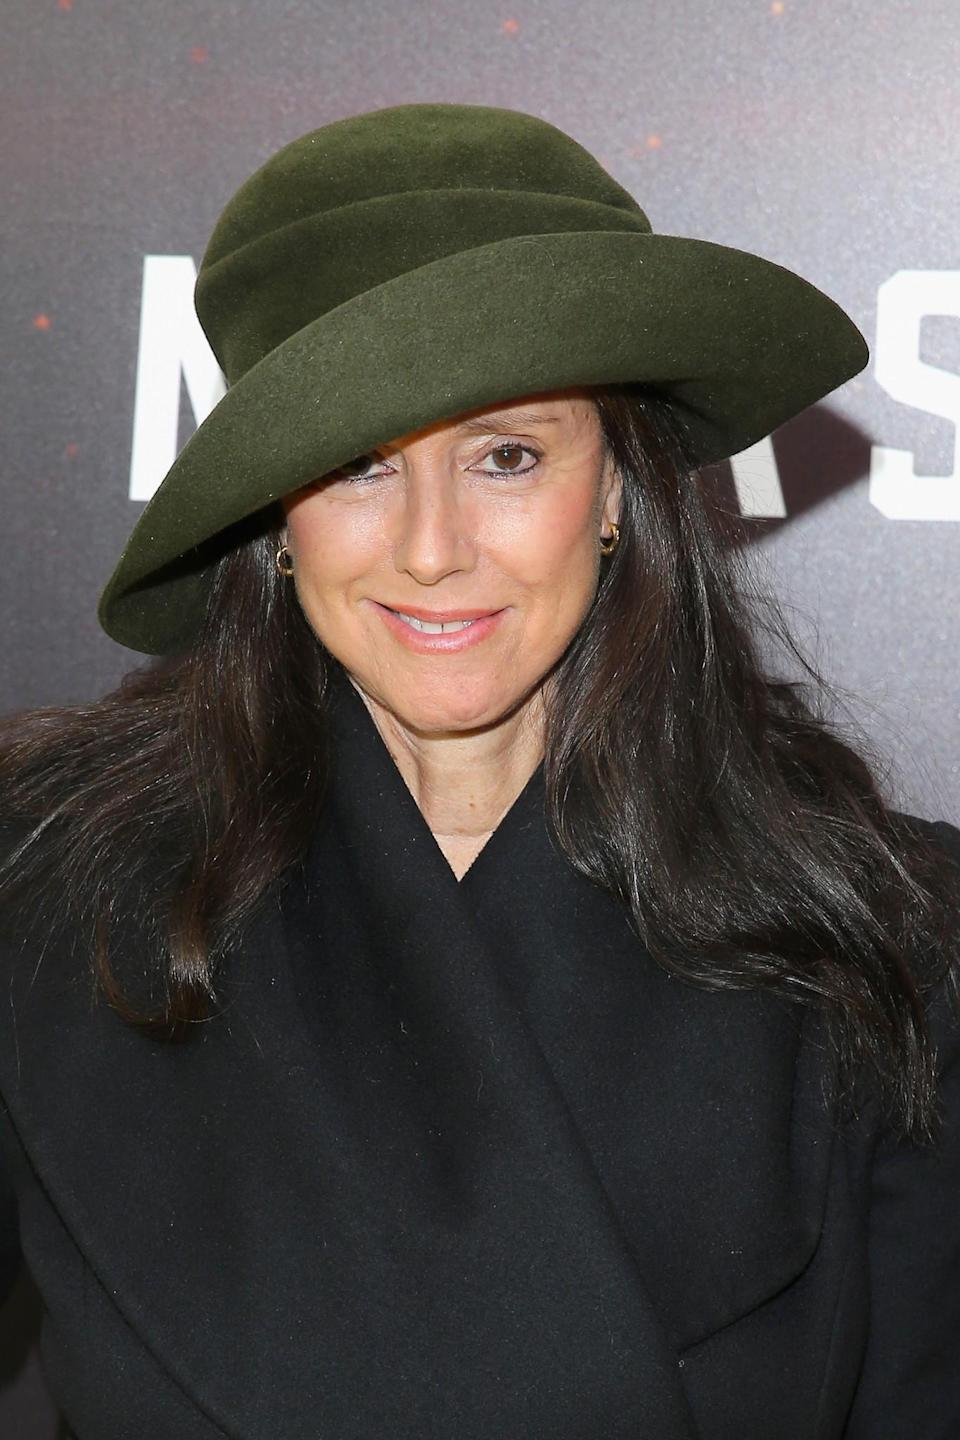 <p>Theatre director Julie Taymor was the first woman to win a Tony Award for directing. She is best known for her work on Broadway's <i>The Lion King</i>, designing much of the show as well as directing it. In 1997, her hard work earned the musical 11 Tony Award nominations and two wins for Julie herself (Best Director and Costume Designer). She has also worked on a number of films including <i>Titus</i> starring Anthony Hopkins and <i>Frida</i>, a movie detailing the life of Mexican artist Frida Kahlo. <i>[Photo: Getty]</i> </p>